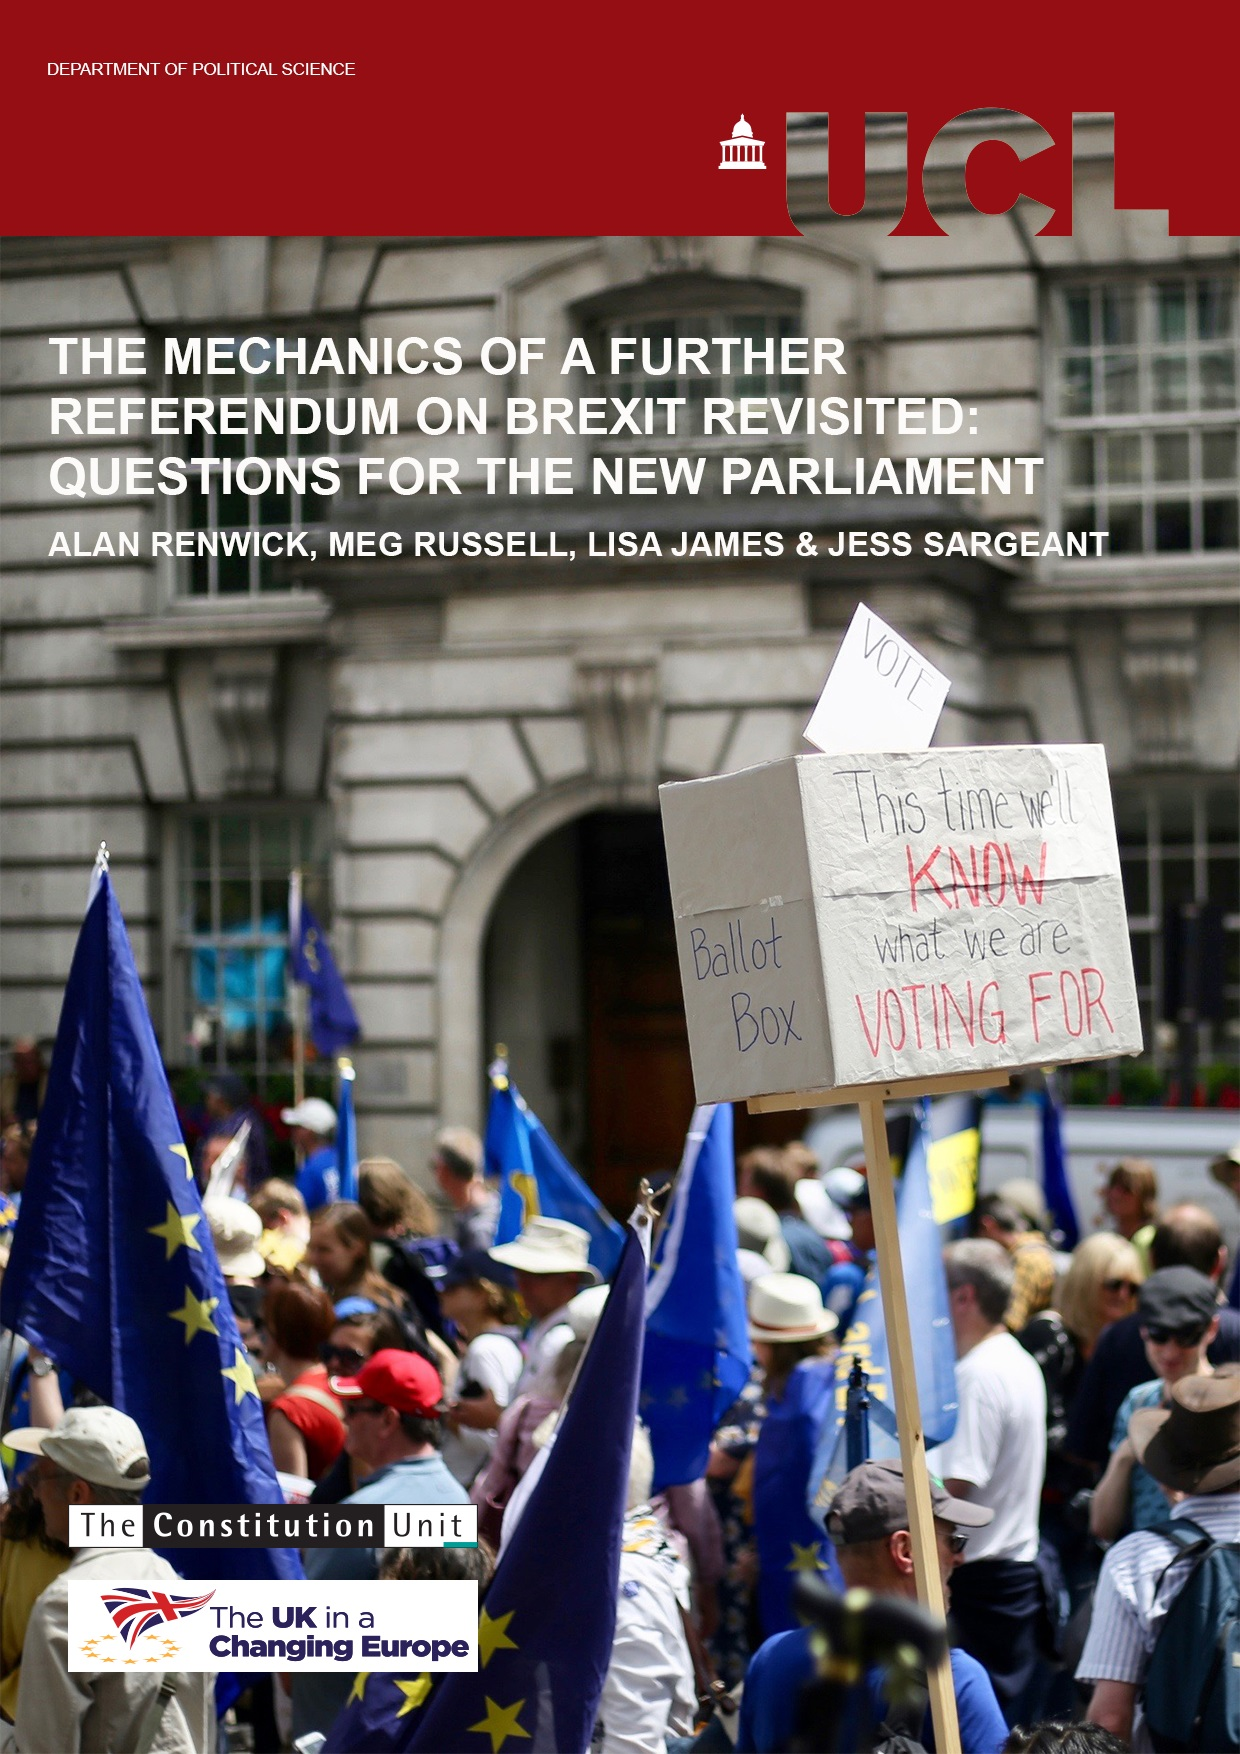 The Mechanics of a Further Referendum on Brexit Revisited